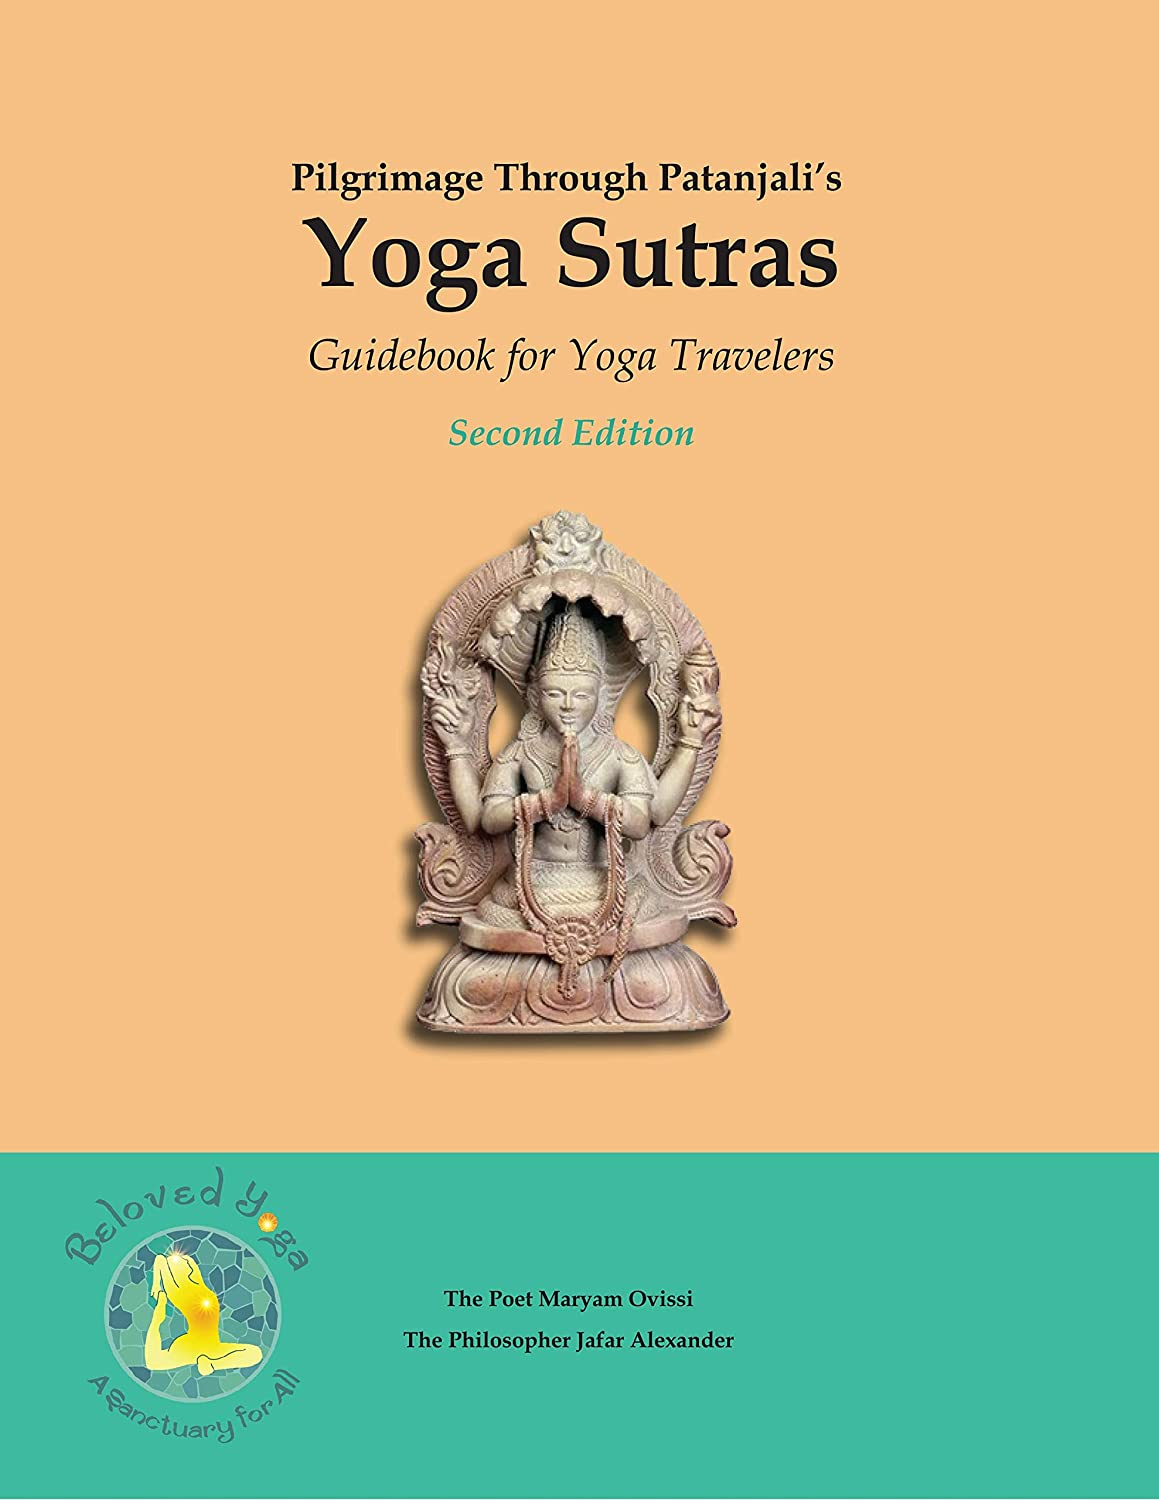 Pilgrimage Through Patanjalis Yoga Sutras: Guidebook for ...